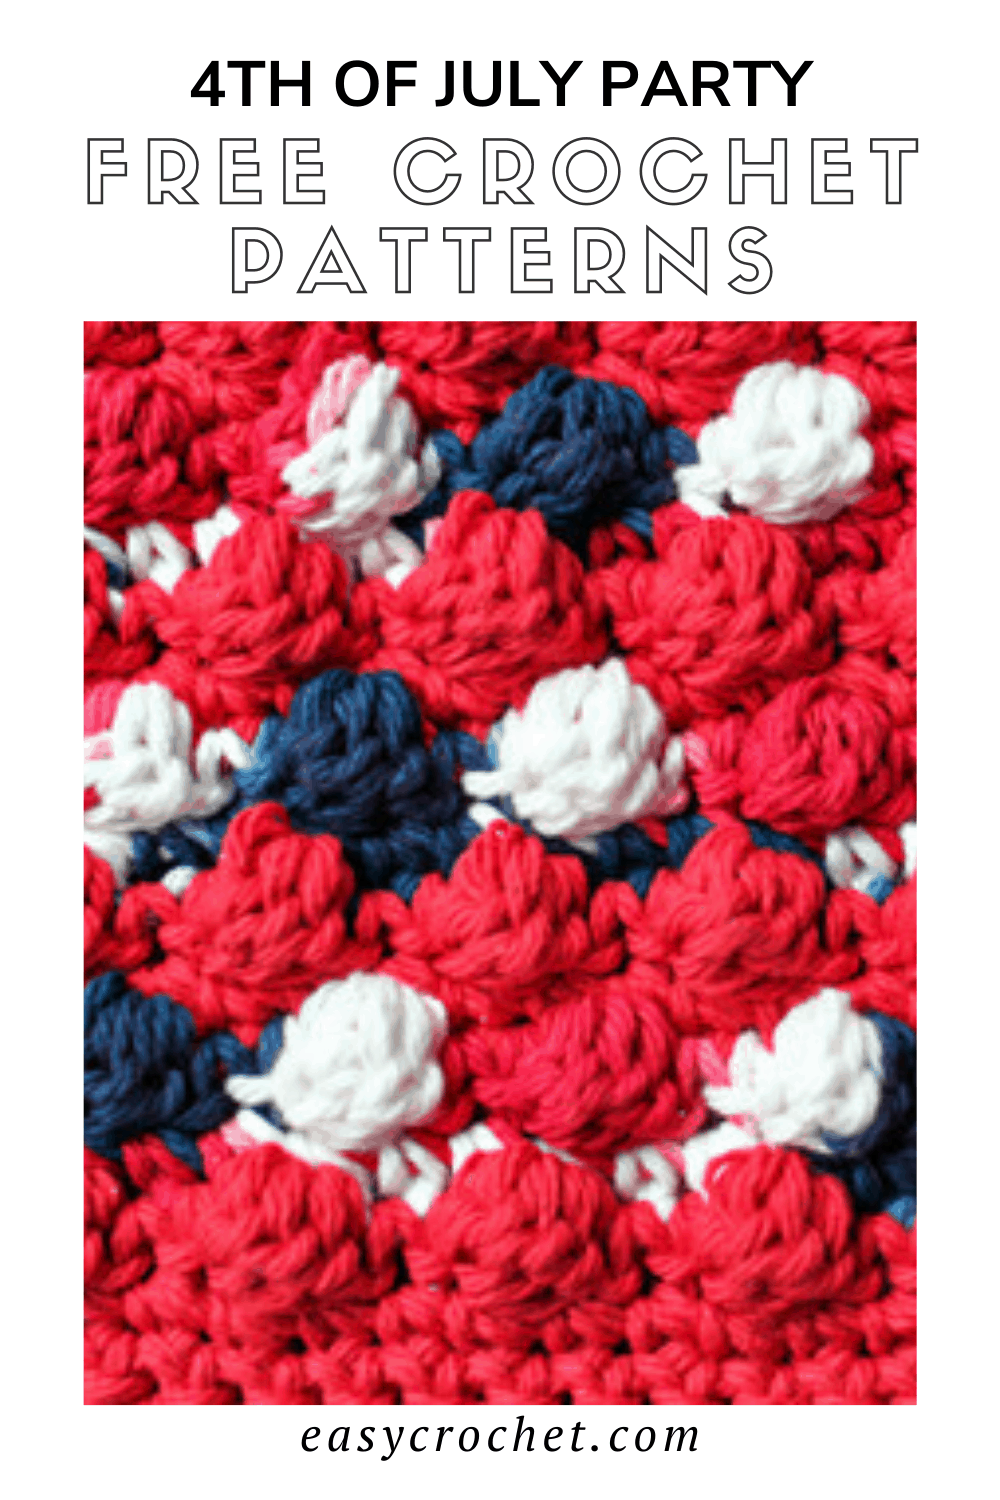 Fourth of July Party Free Crochet Patterns rounded up by easycrochet.com. Find table runners, stars, hot pads and more to add to your patriotic party. via @easycrochetcom